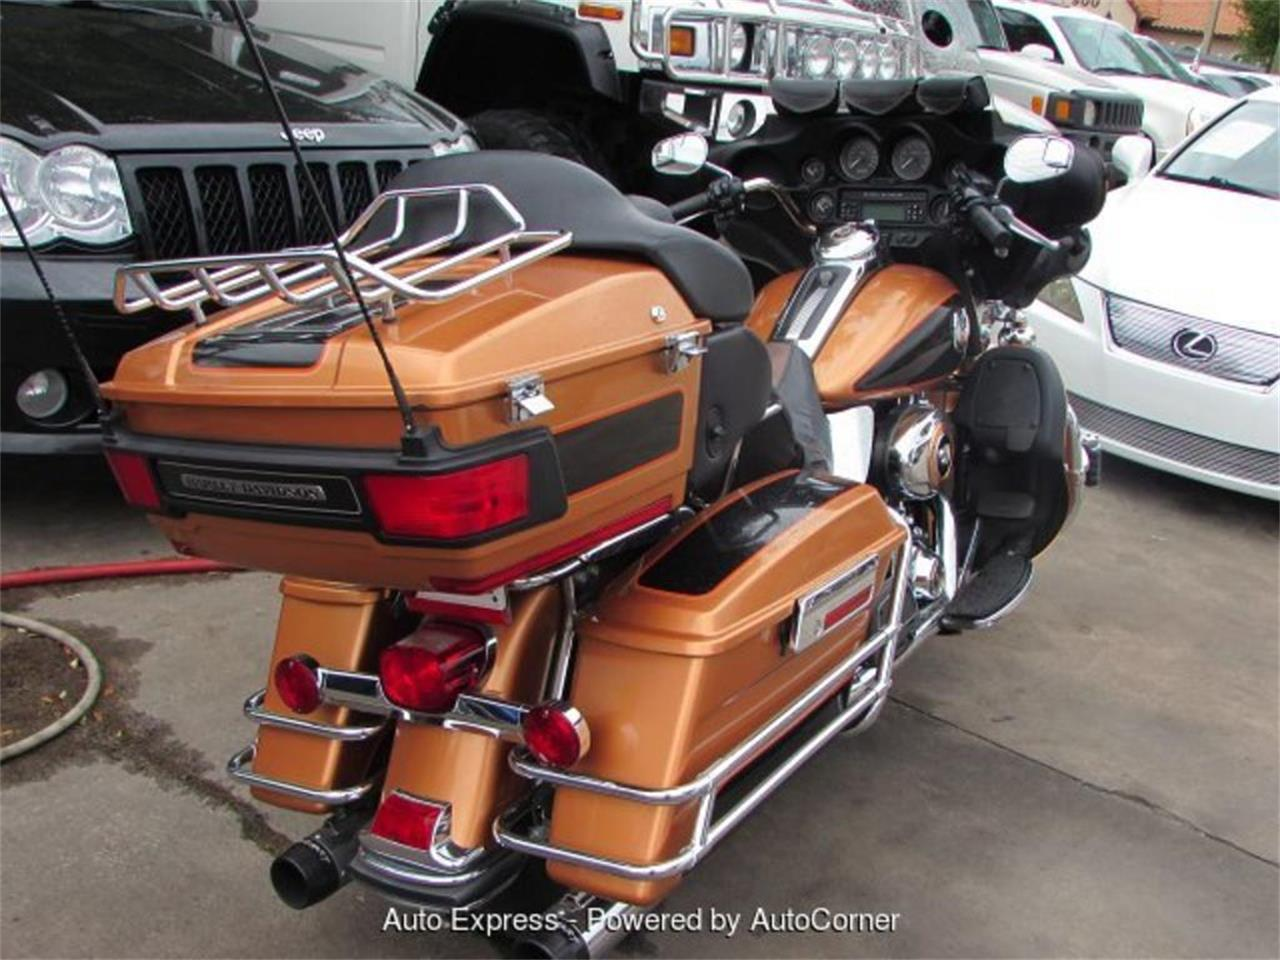 Large Picture of '08 Harley-Davidson Electra Glide located in Florida Auction Vehicle - Q598